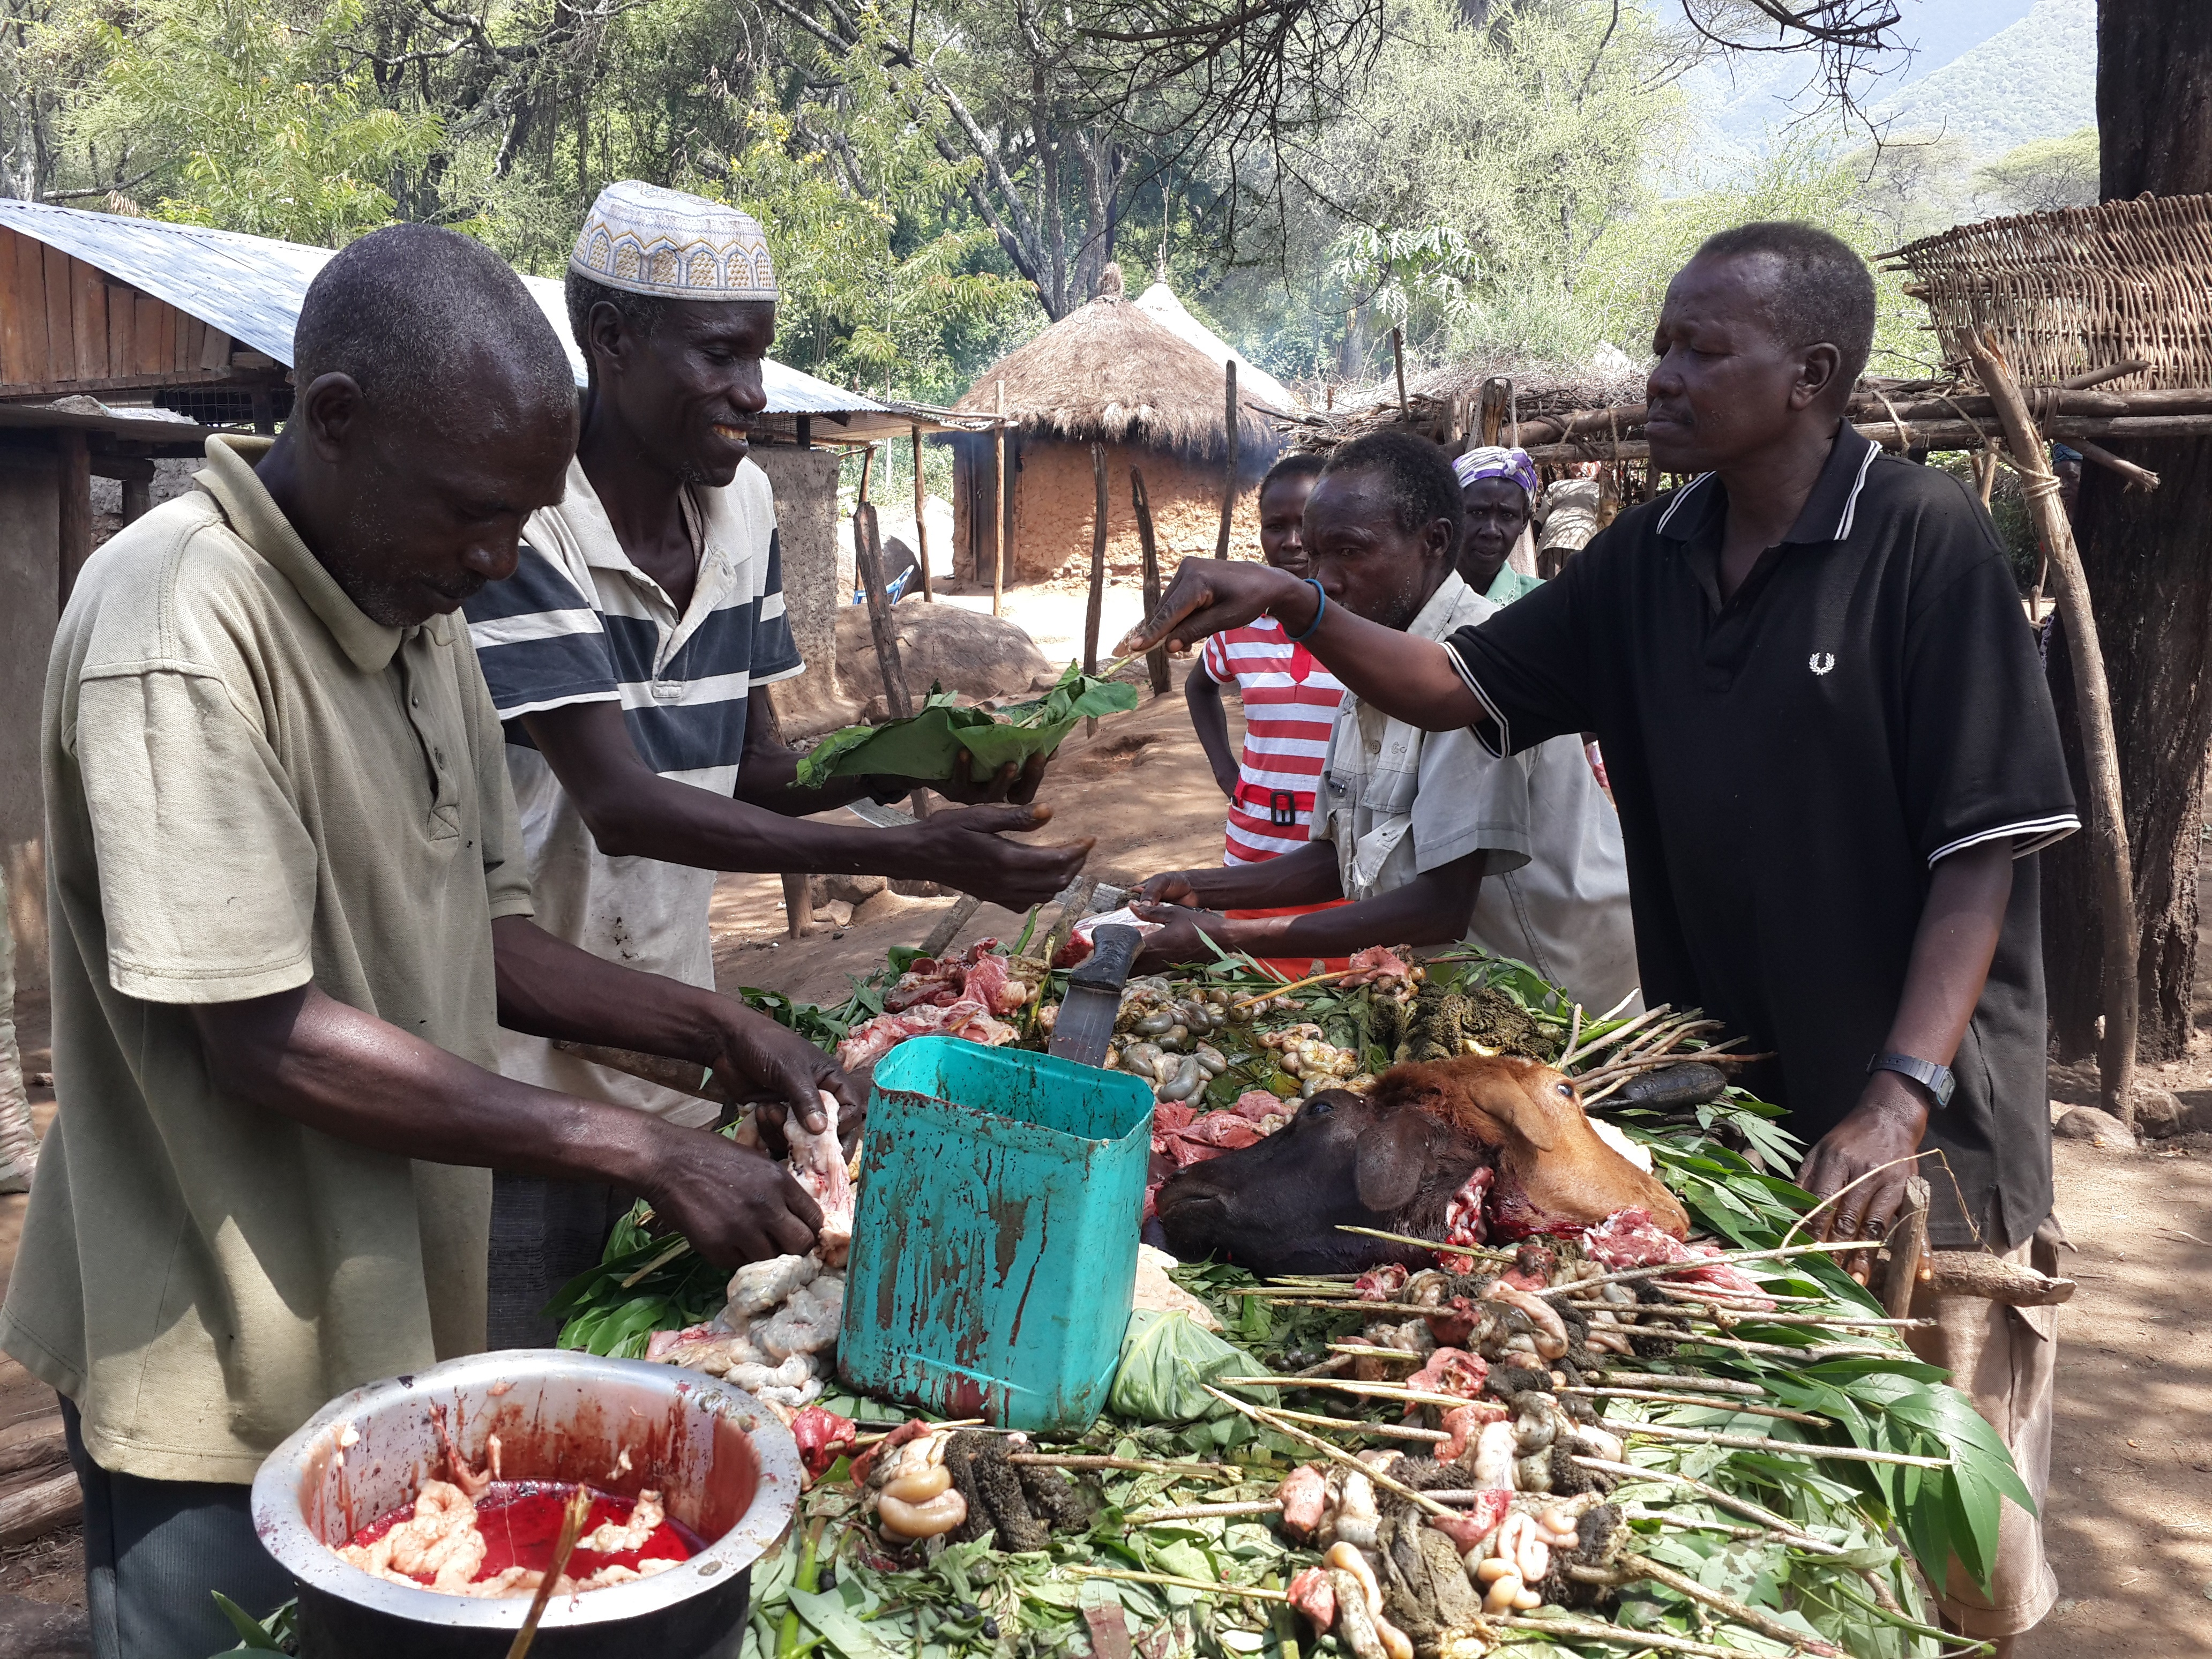 Tugen, Pokot, and Pokot engaging in trade at the Kilos Market as peace resumes in a previously cattle rustling hot spot